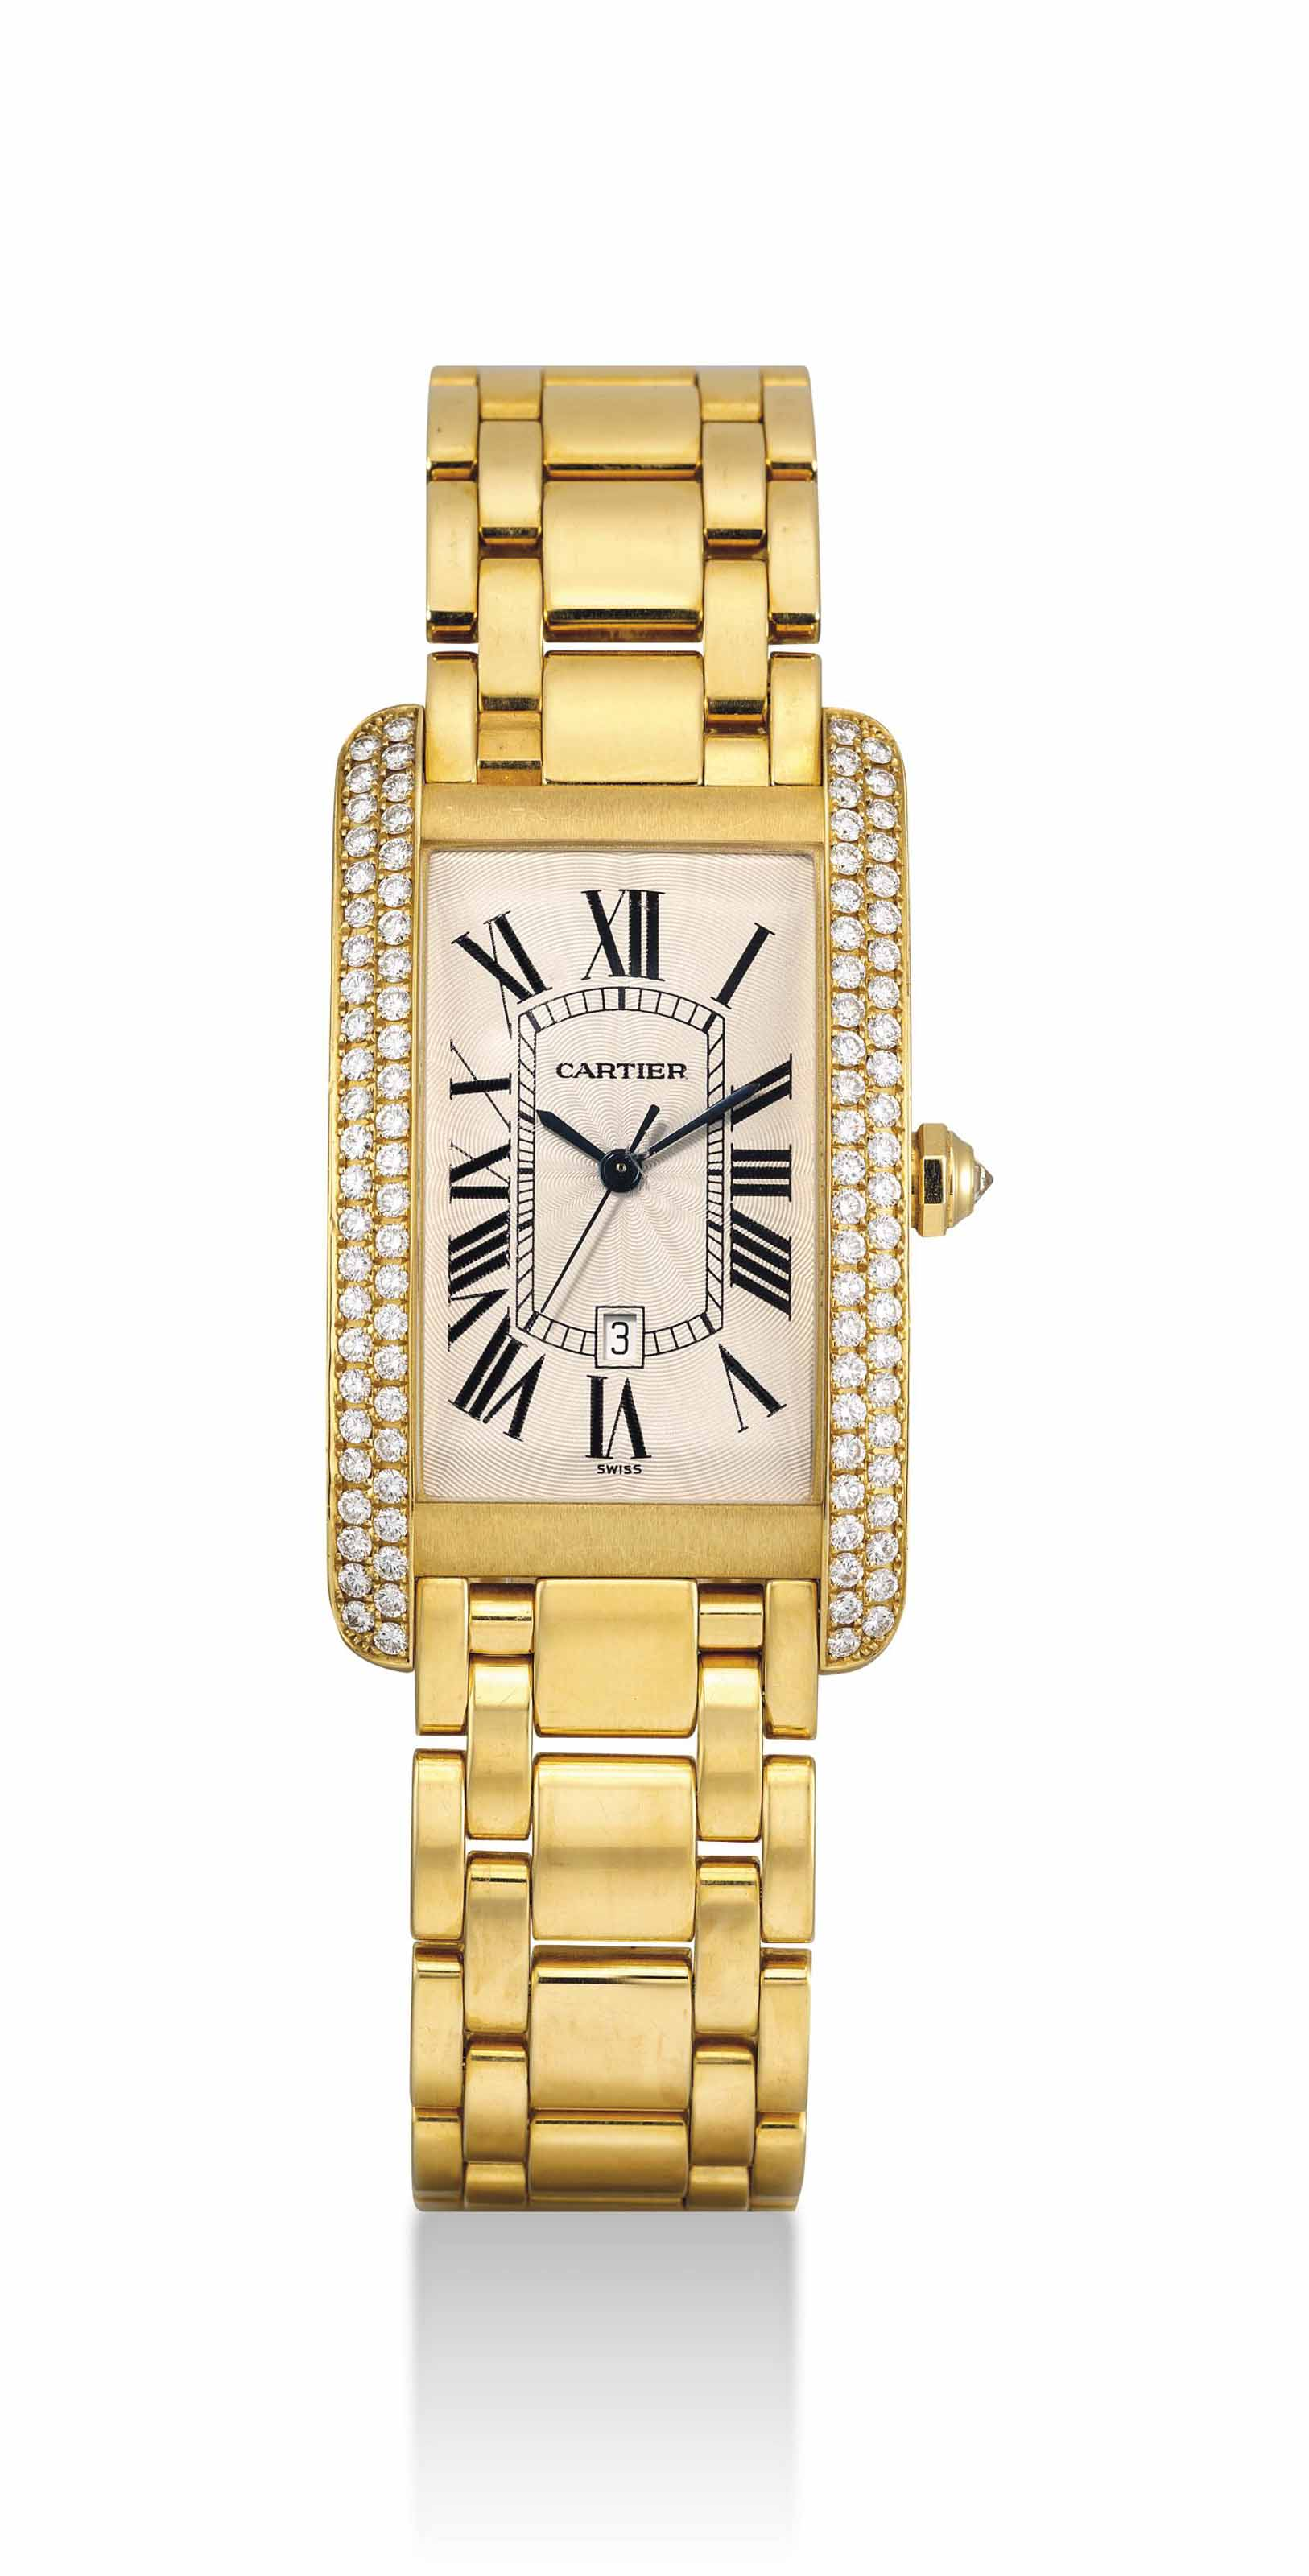 CARTIER. A LARGE AND FINE 18K